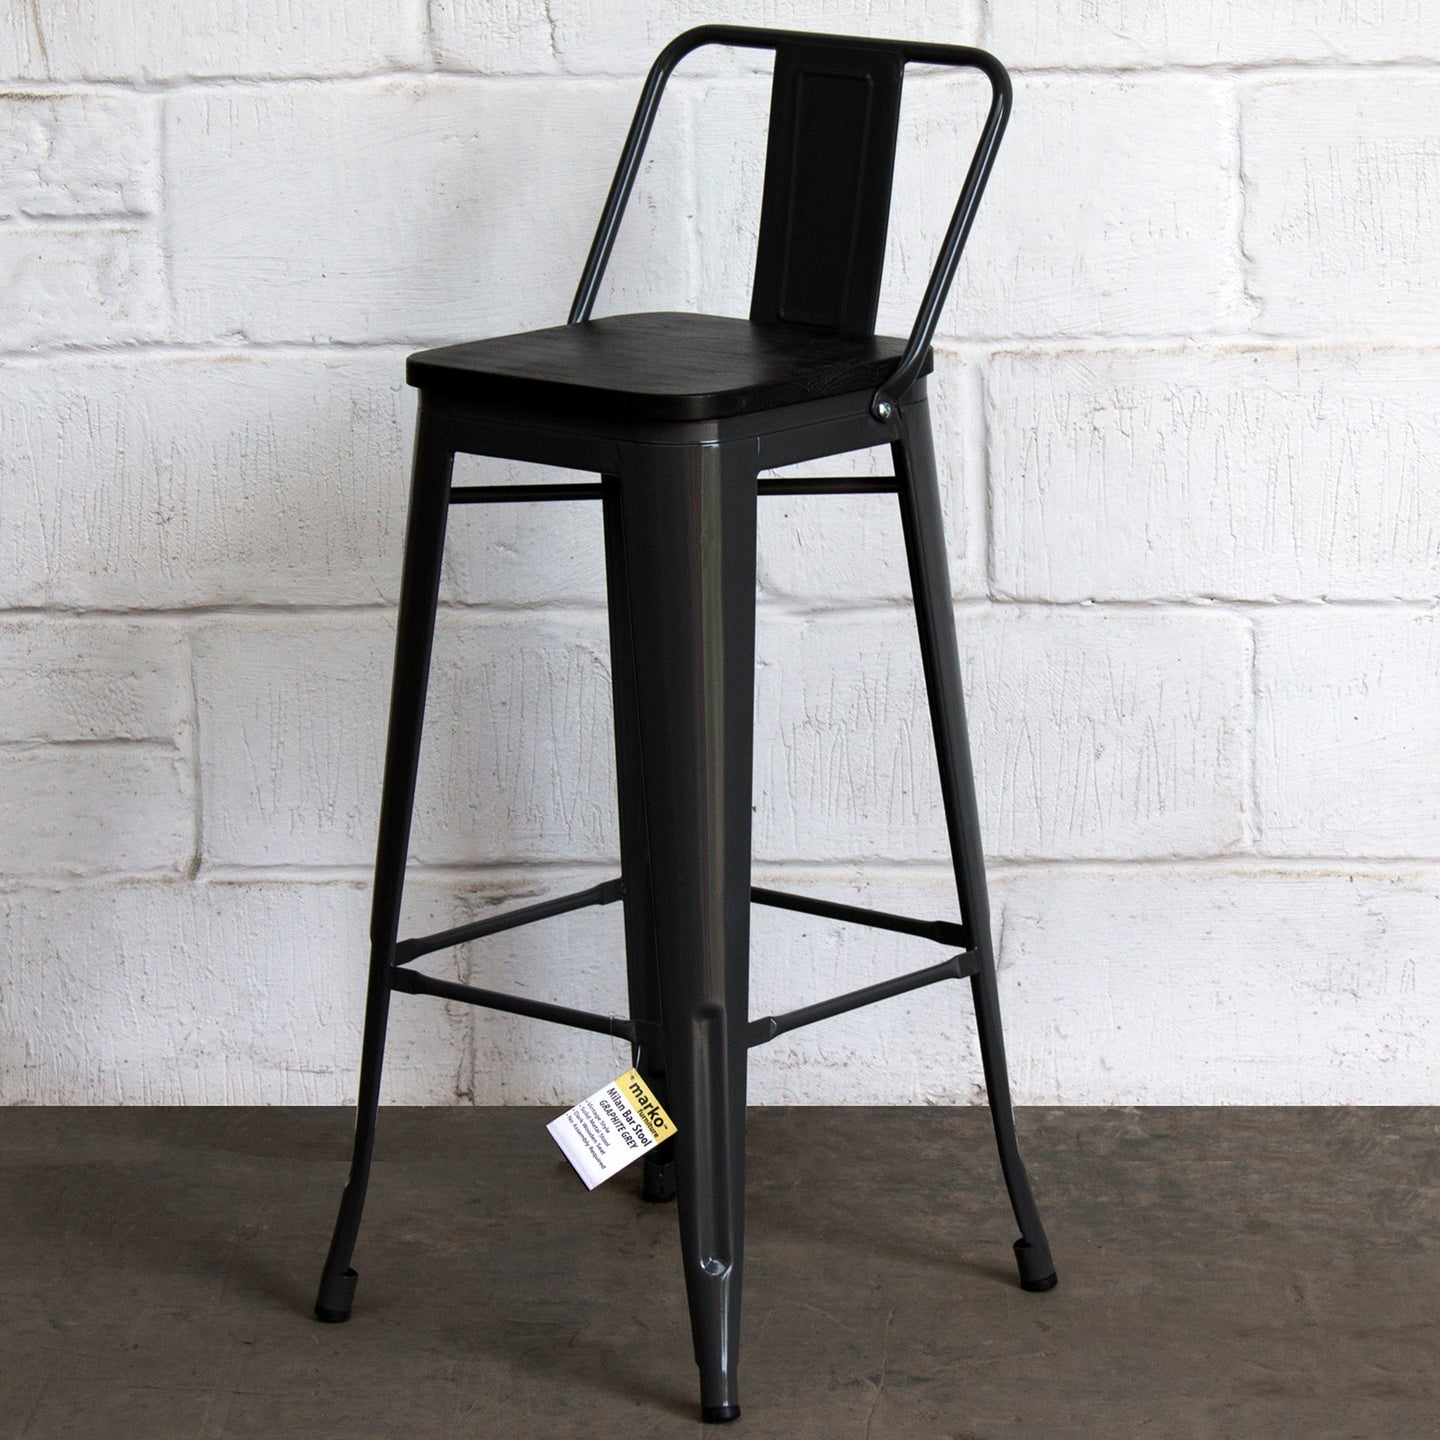 Milan Bar Stool - Graphite Grey